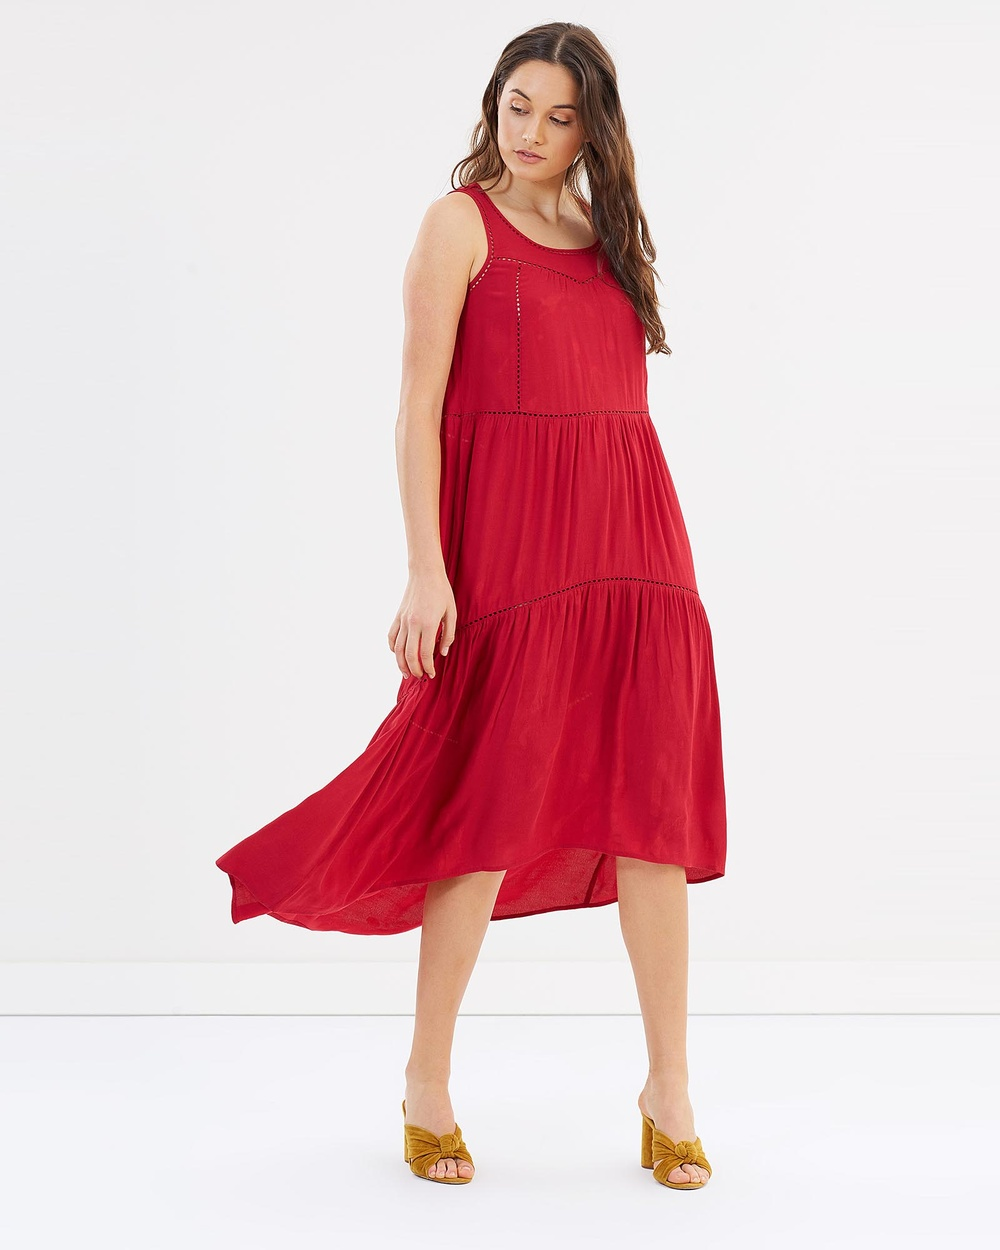 Jag Naya Sleeveless Maxi Dress Dresses Red Naya Sleeveless Maxi Dress